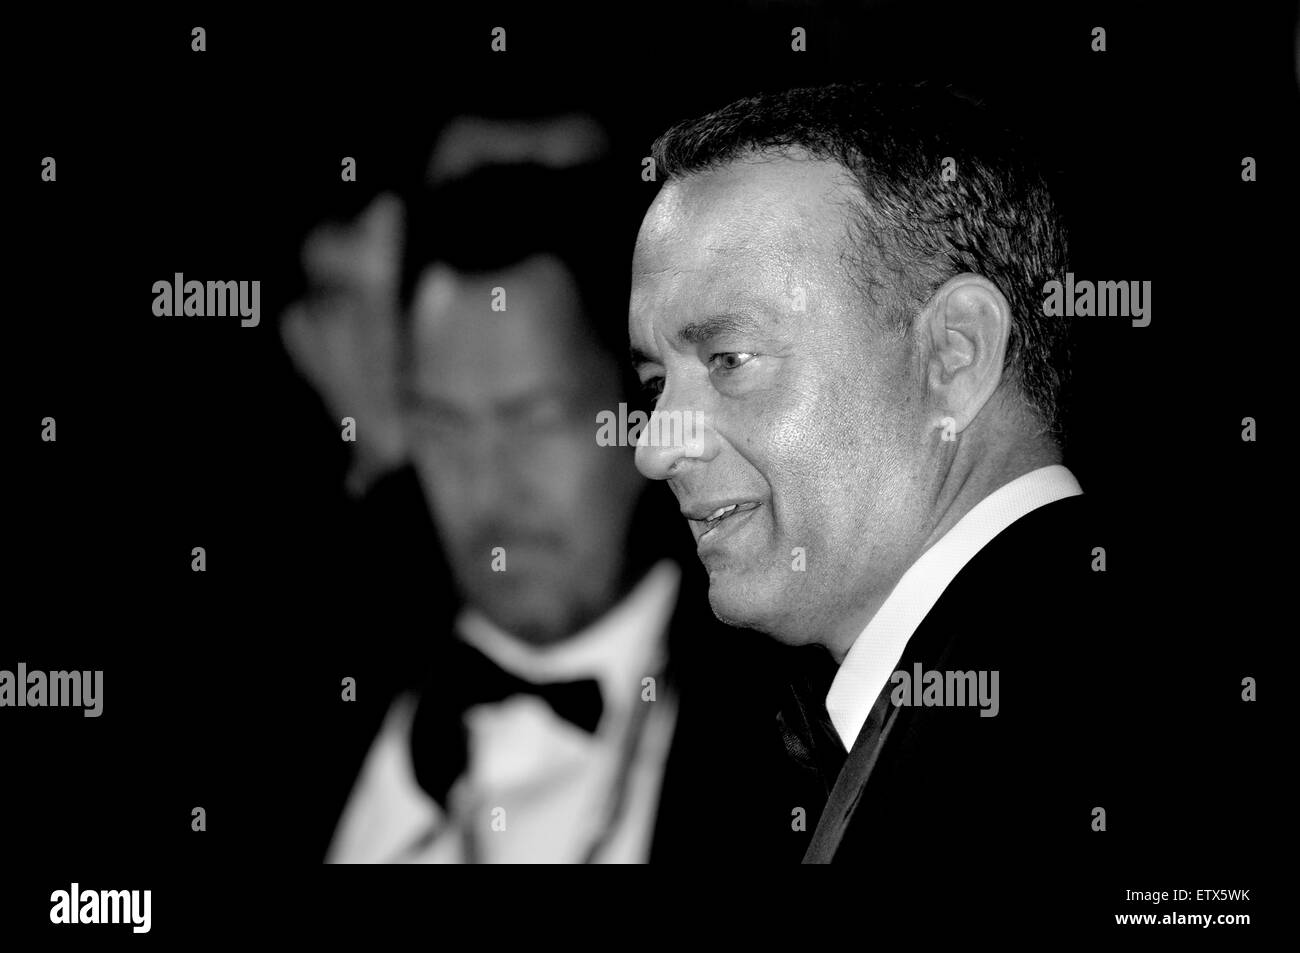 Tom Hanks at the Gala Premiere of 'Captain Phillips', London, 9th October 2013 - Stock Image